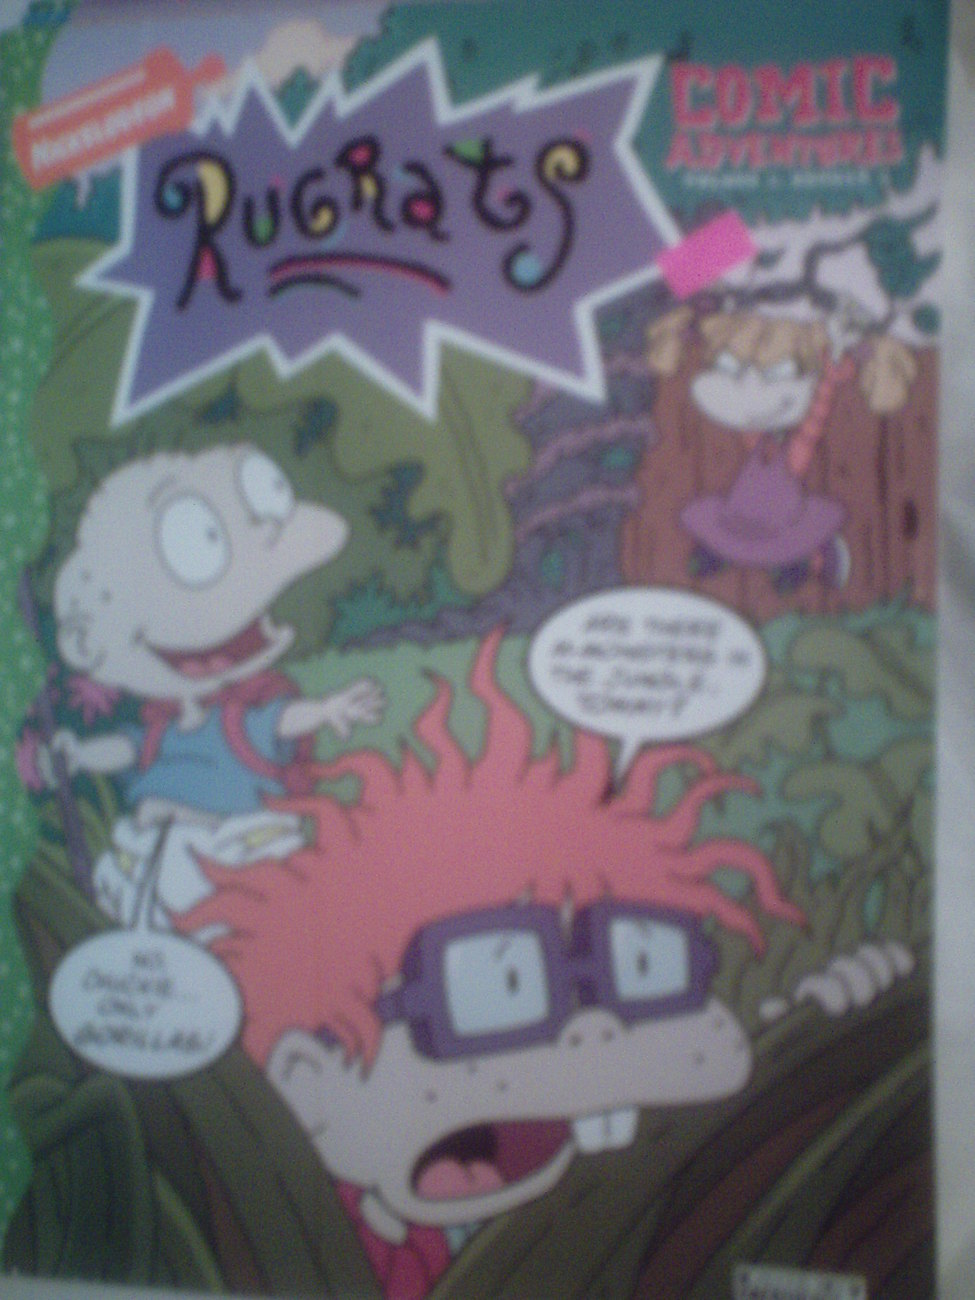 Nickelodeon Rugrats Comic Adventures Magazine  Vol. 1 Number 2 Dec.1997